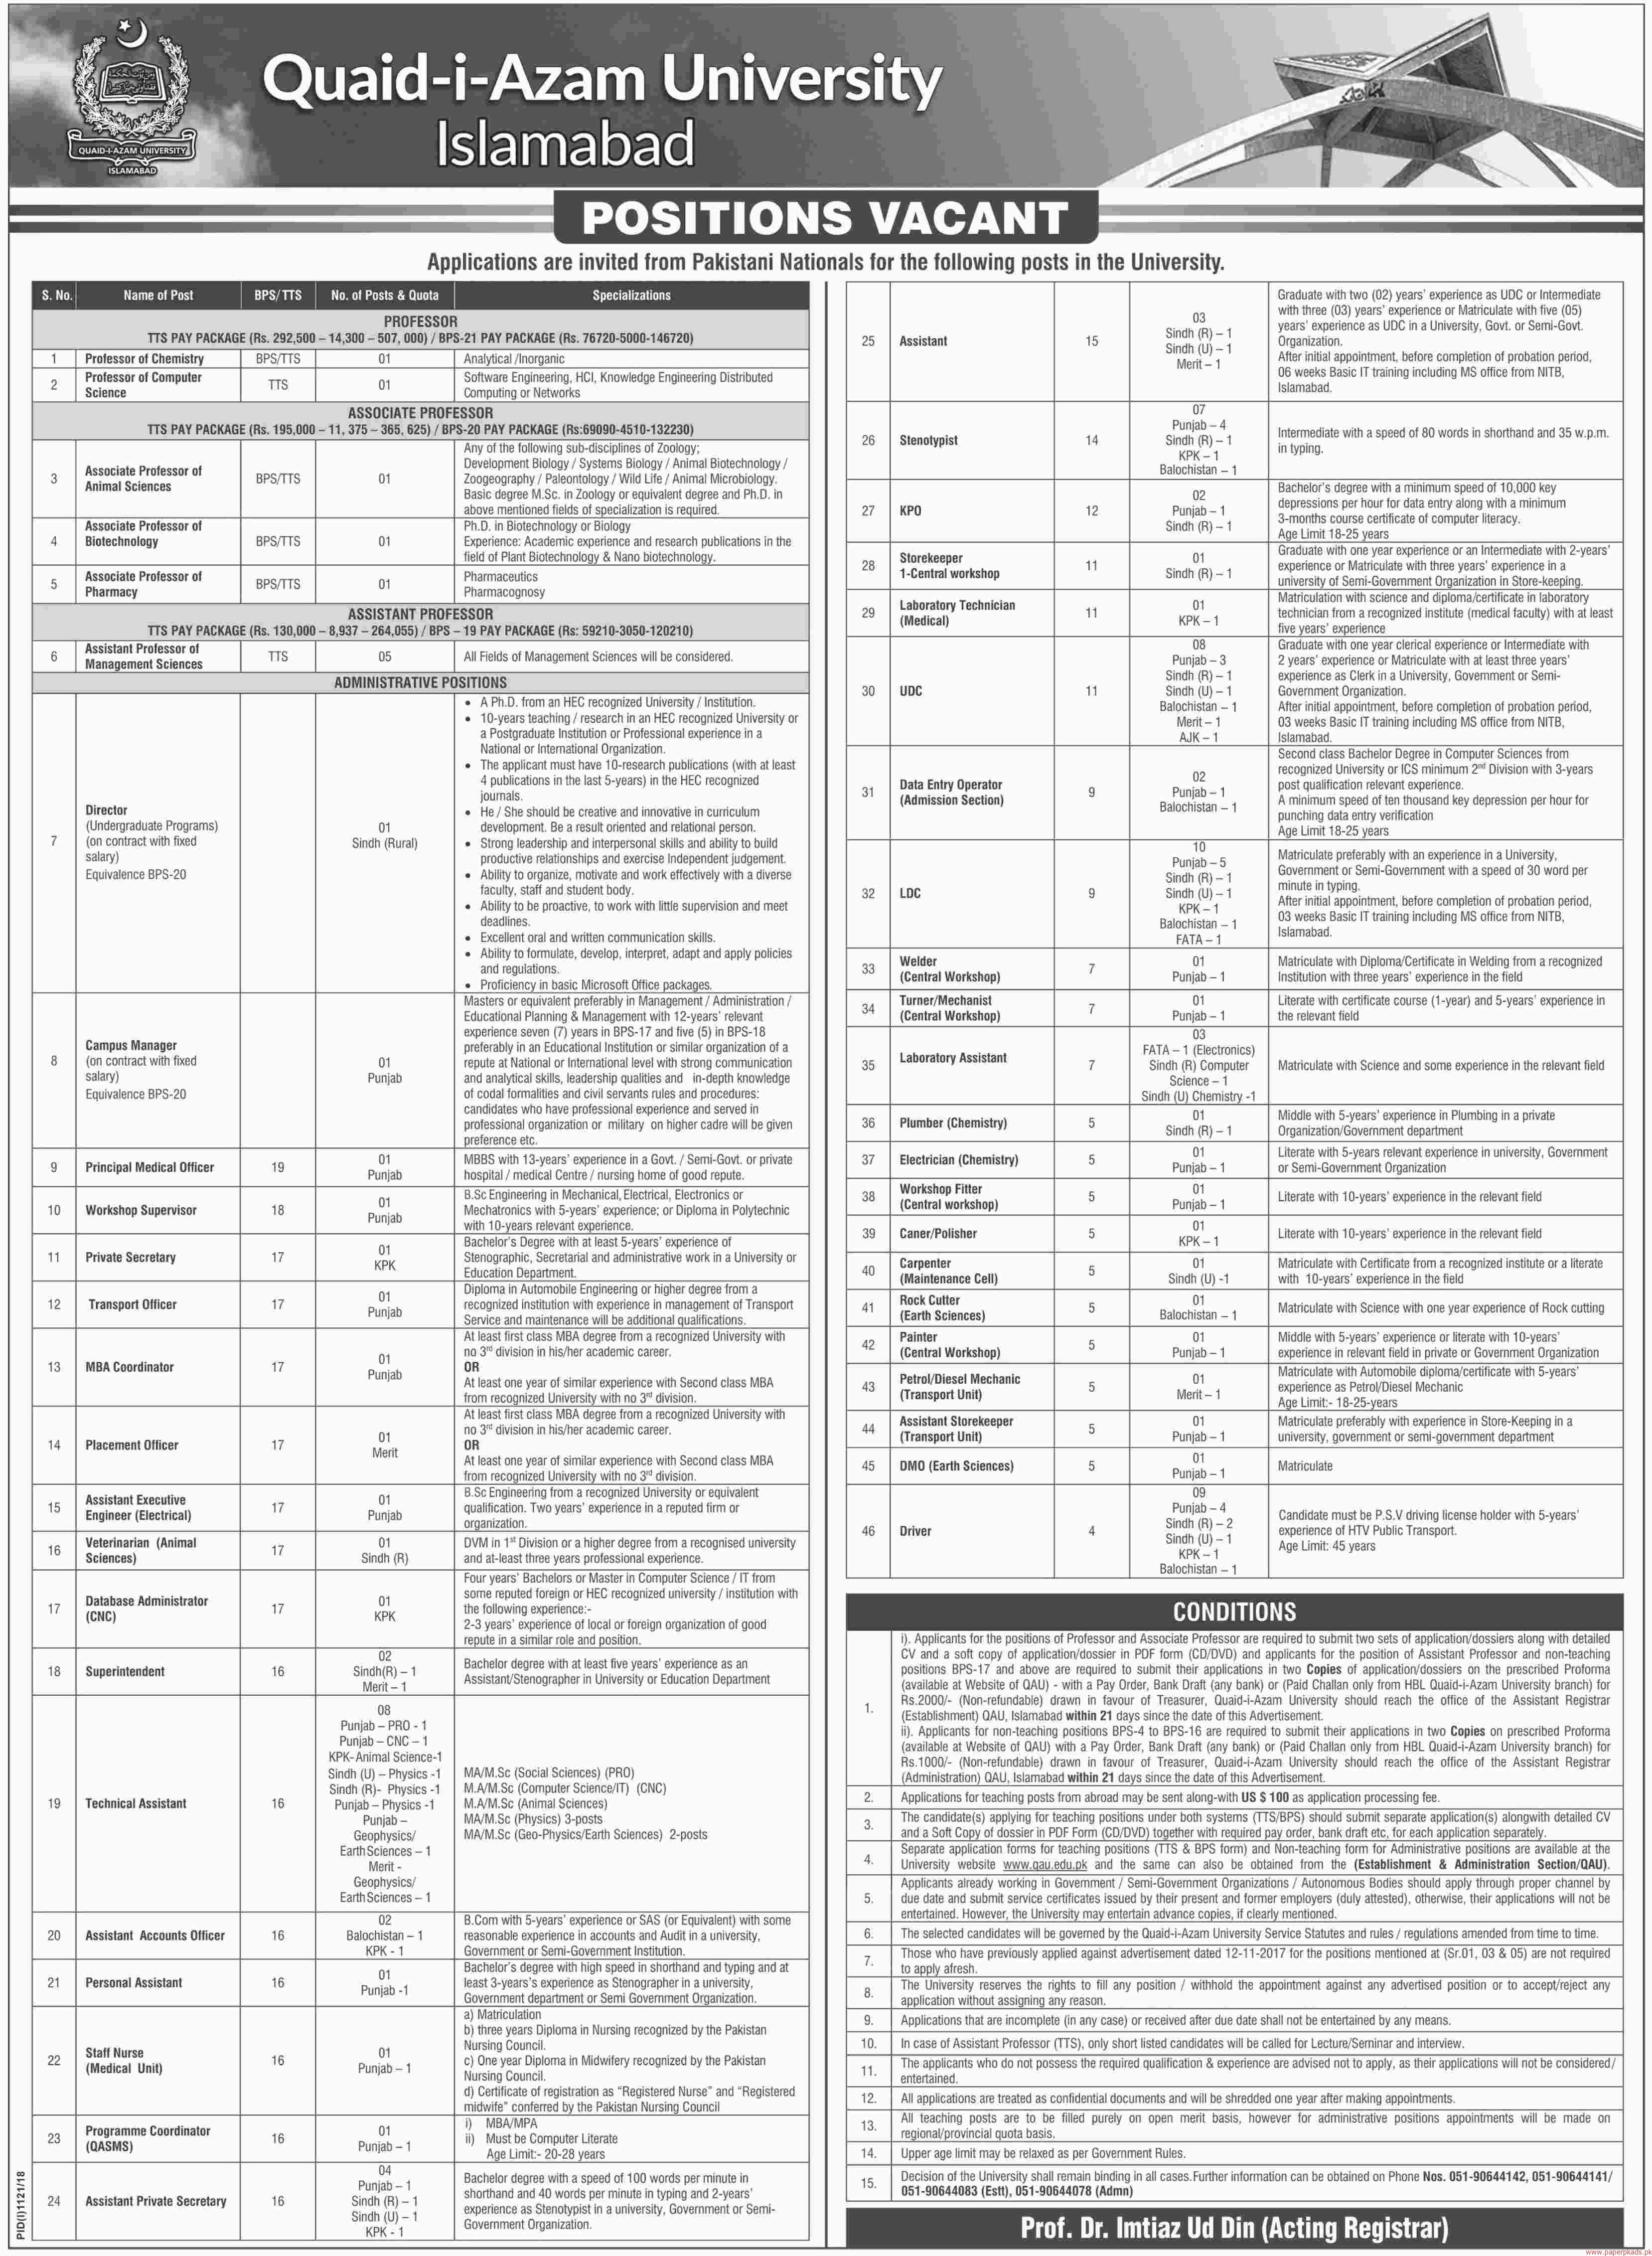 Quaid-i-Azam University Jobs 2018 Latest